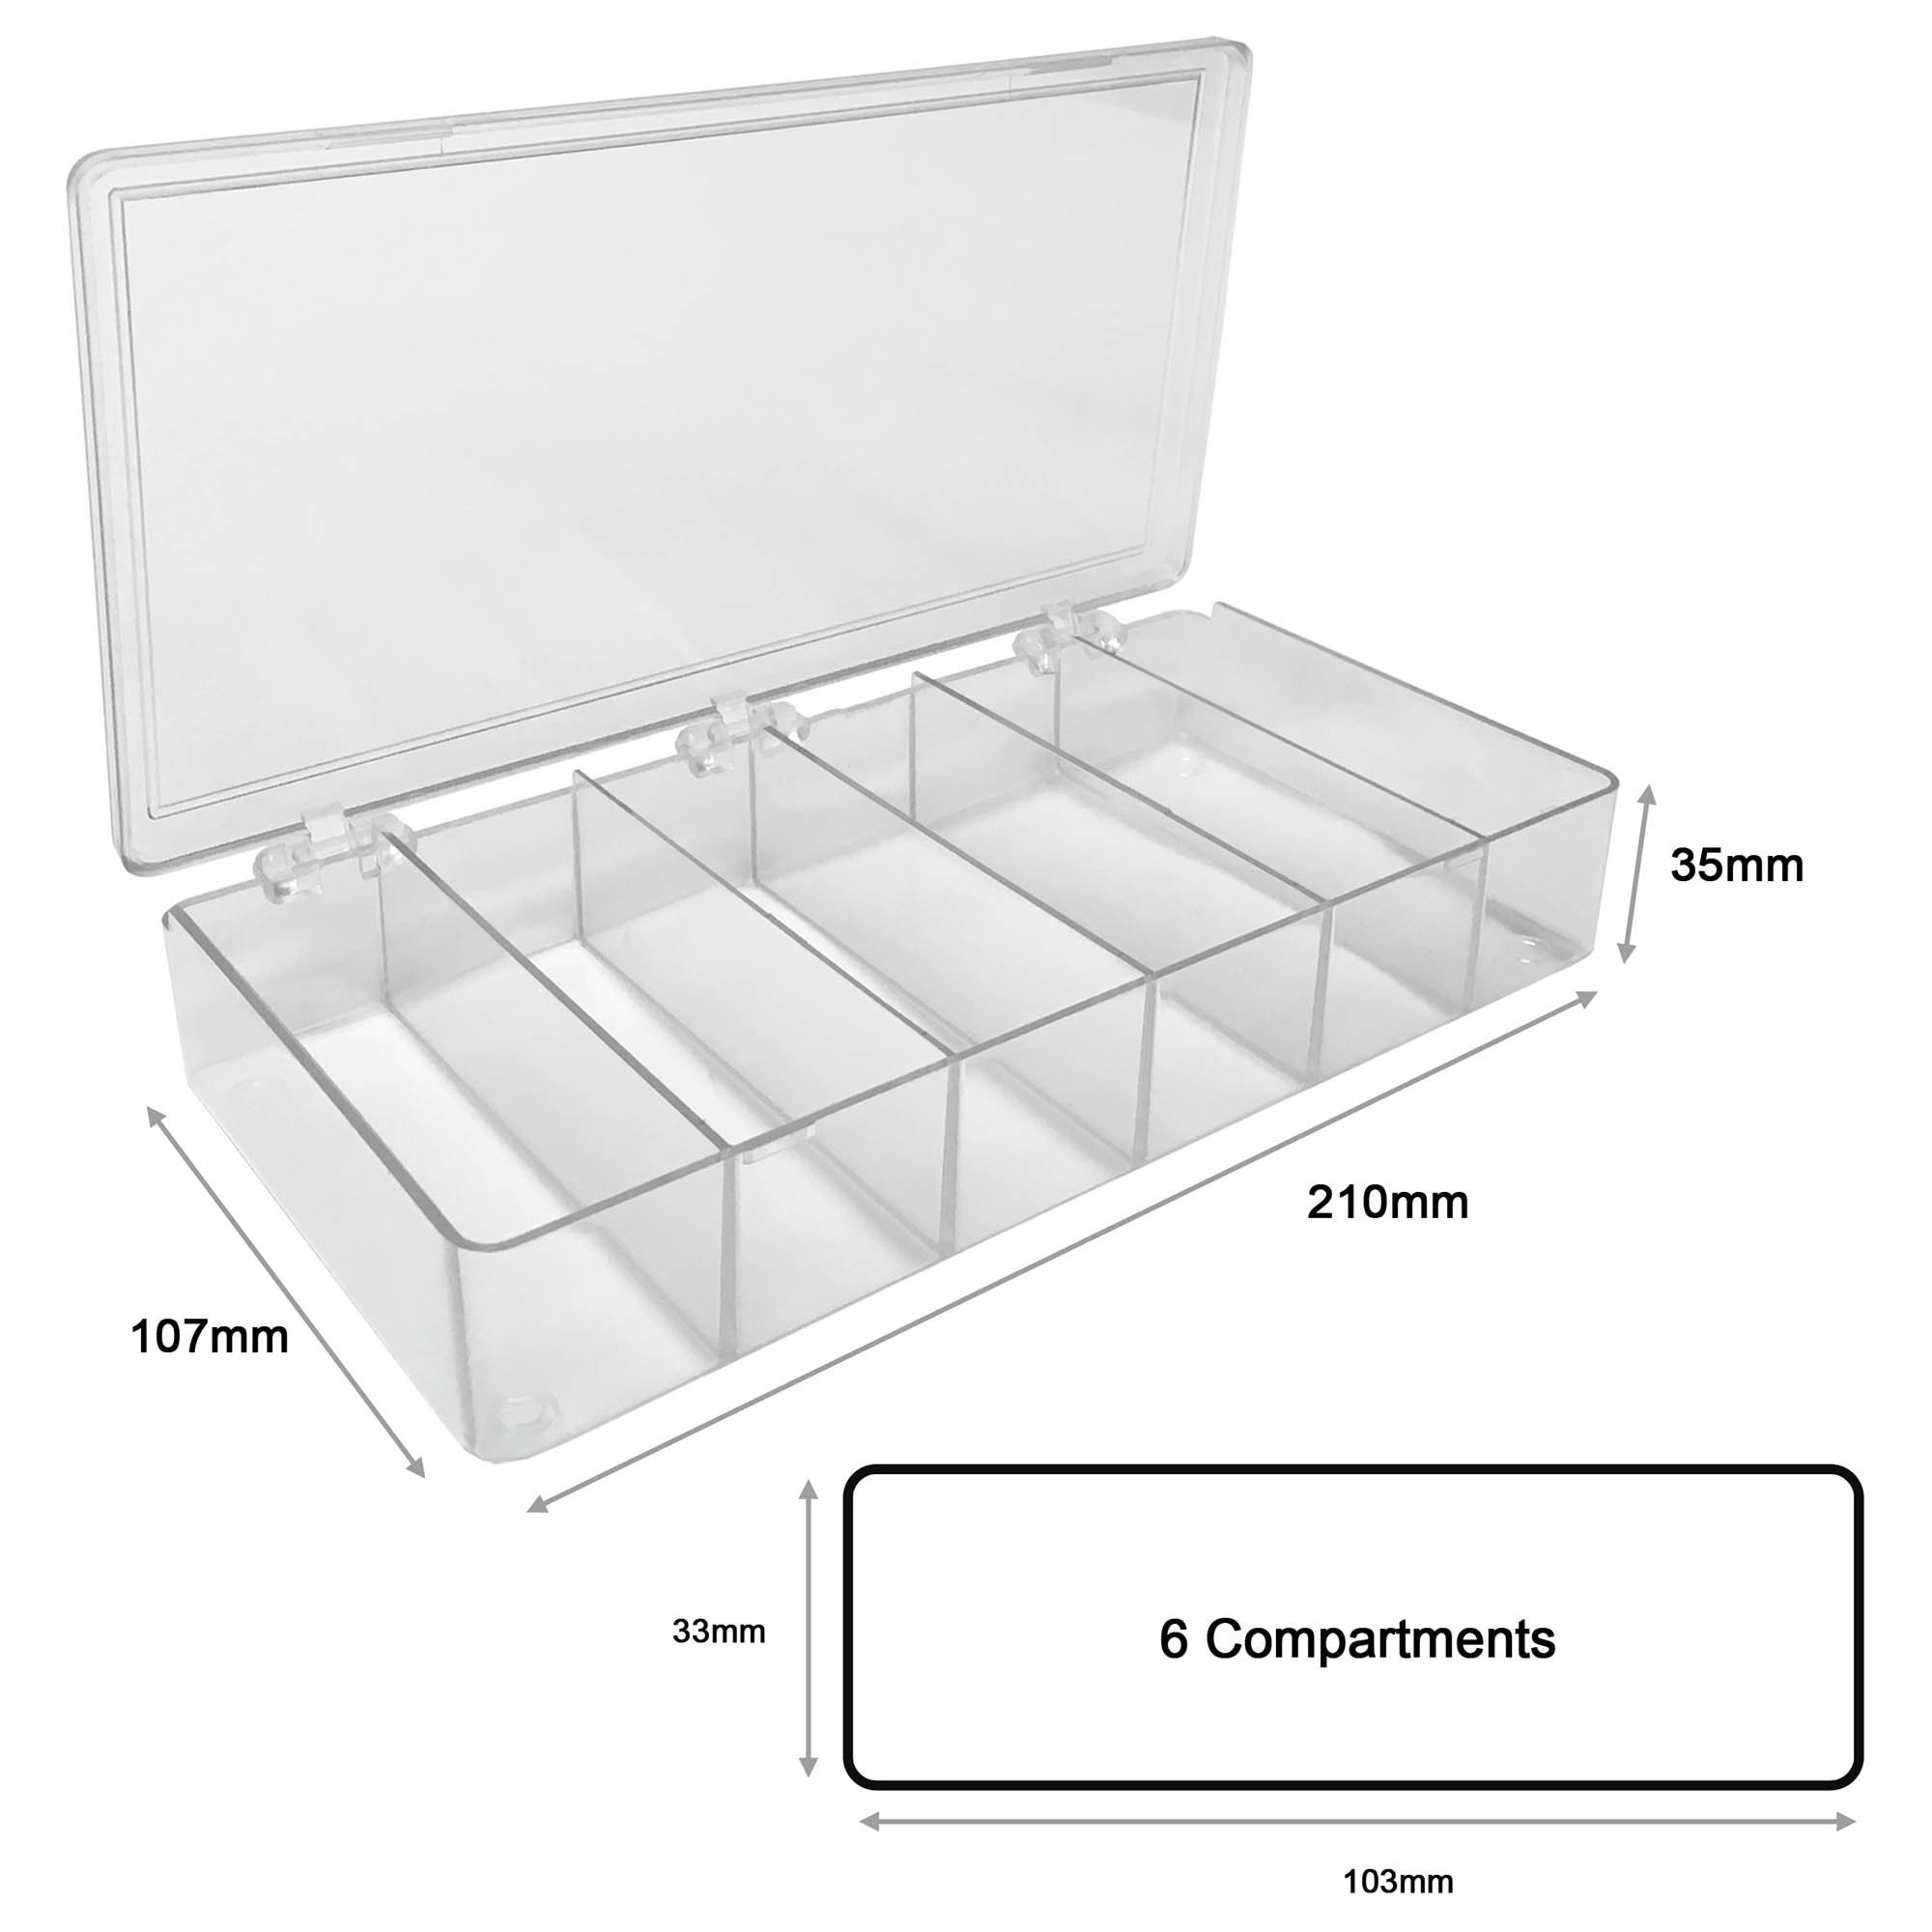 MultiBox Clear Western Blot Box - 6 Compartments 33 x 103 x 35mm Each (Pack of 4)